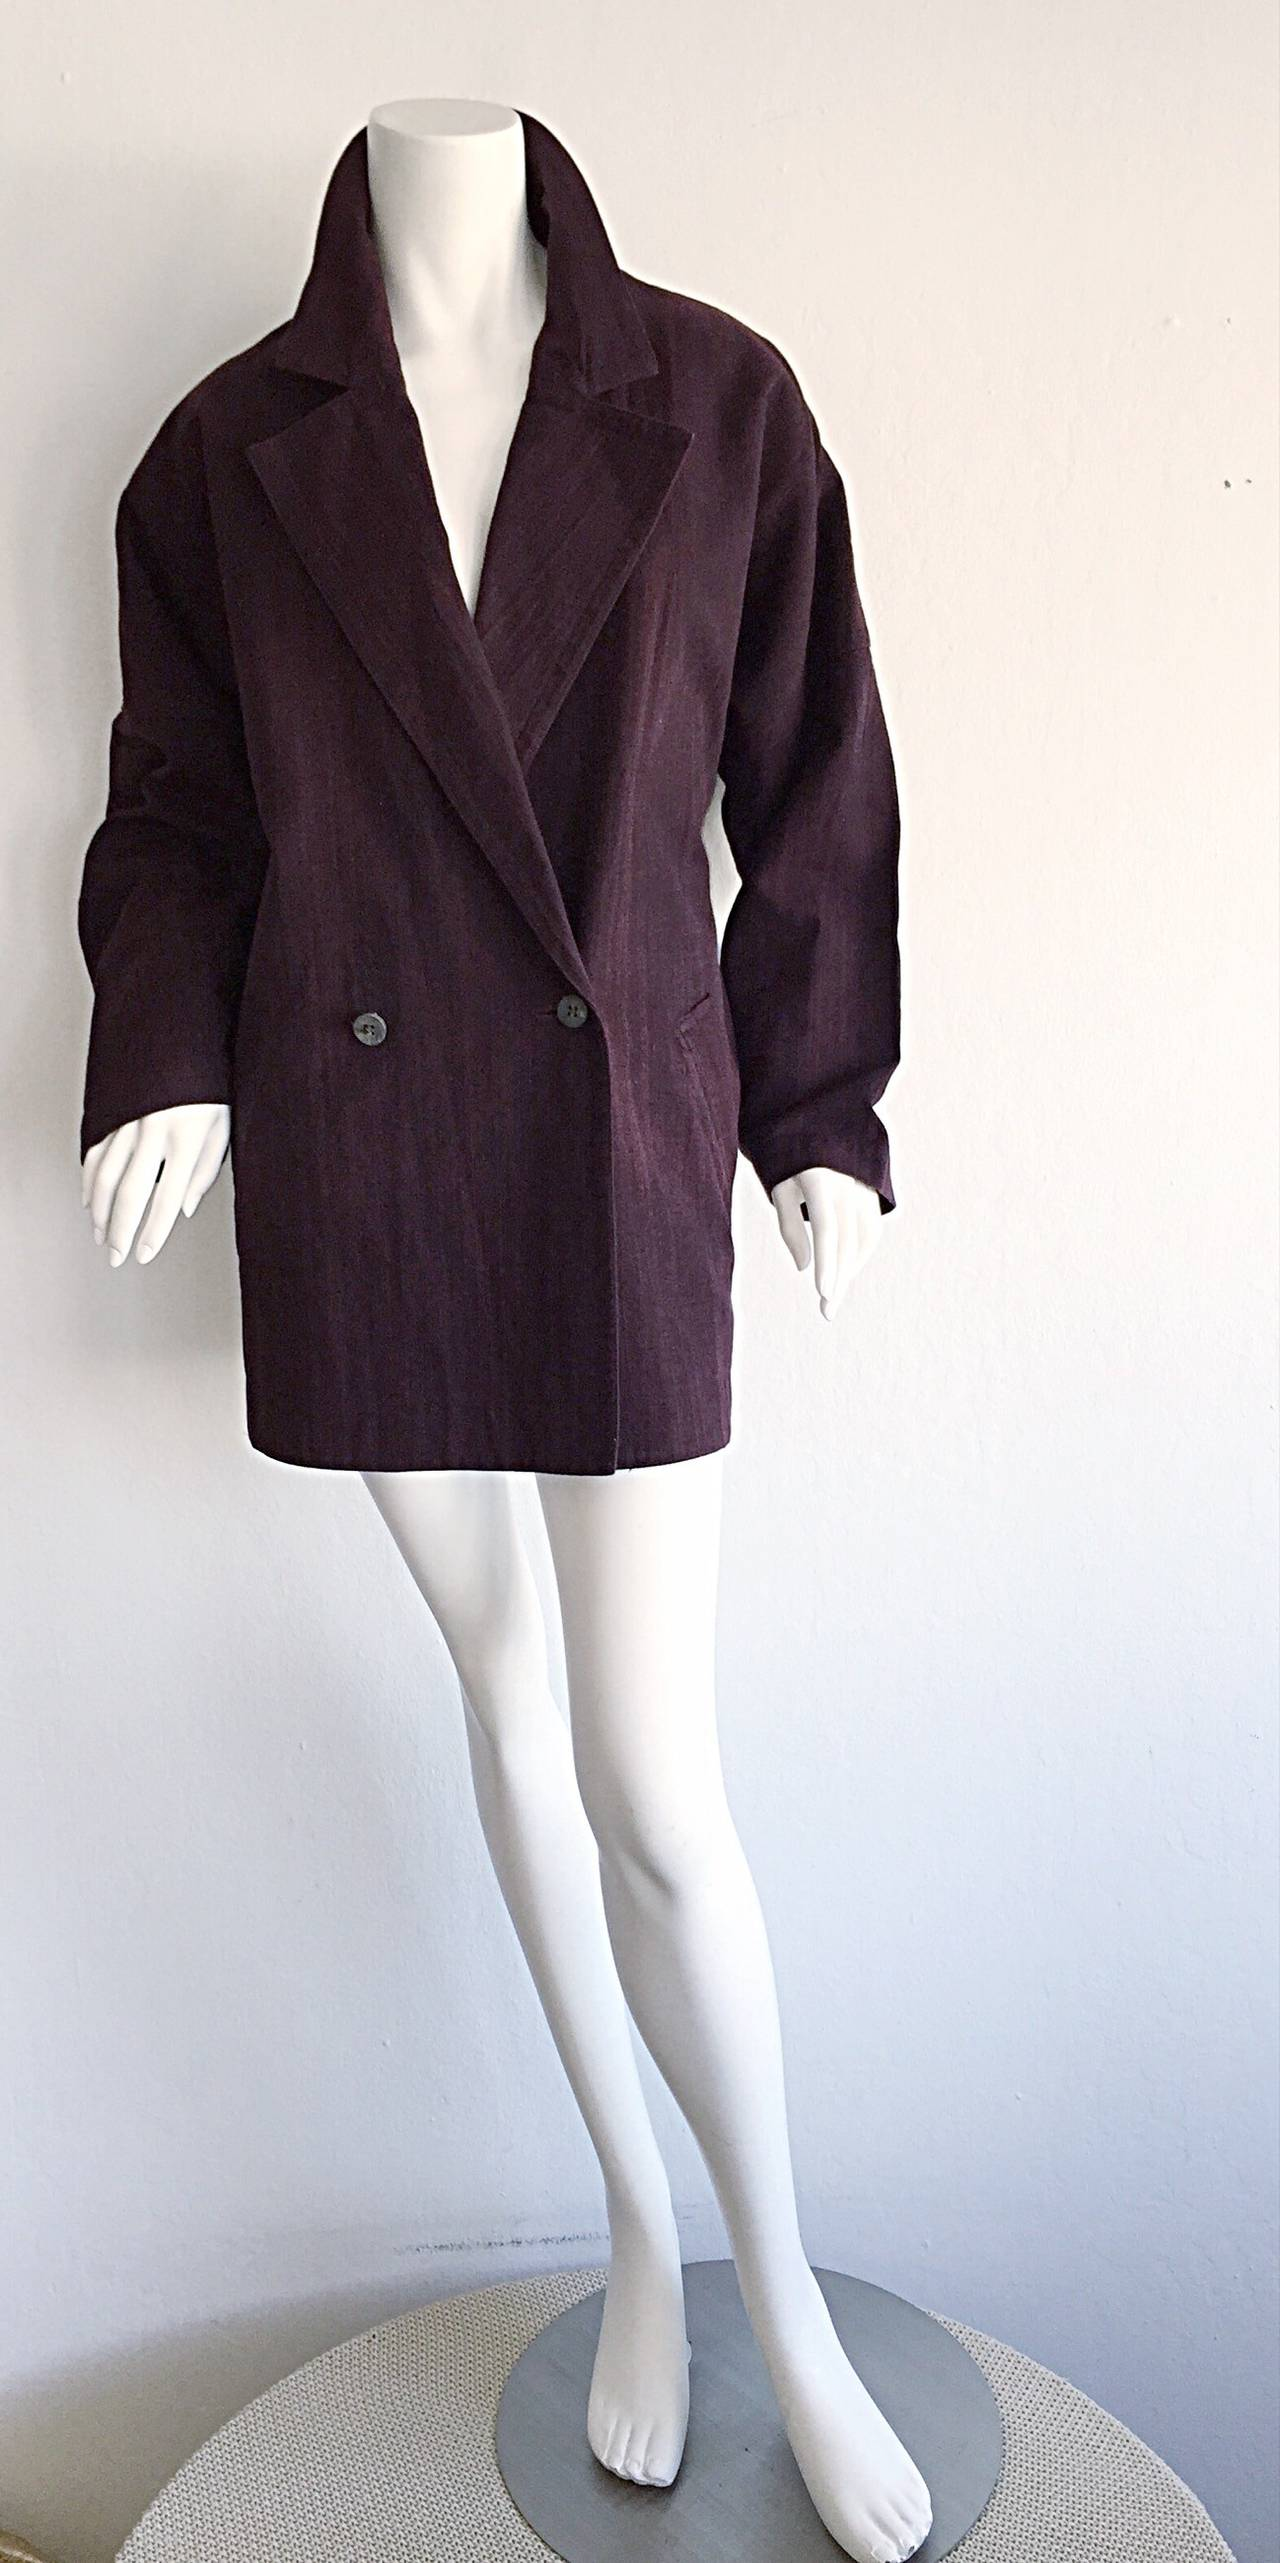 Only Issey Miyake could offer such a profound cut on a double breasted kimono style blazer! Beautiful cordovan color, with natural variations throughout the jacket. Wonderful slouchy fit, with dolman-like sleeves. Pockets at both sides of the waist.